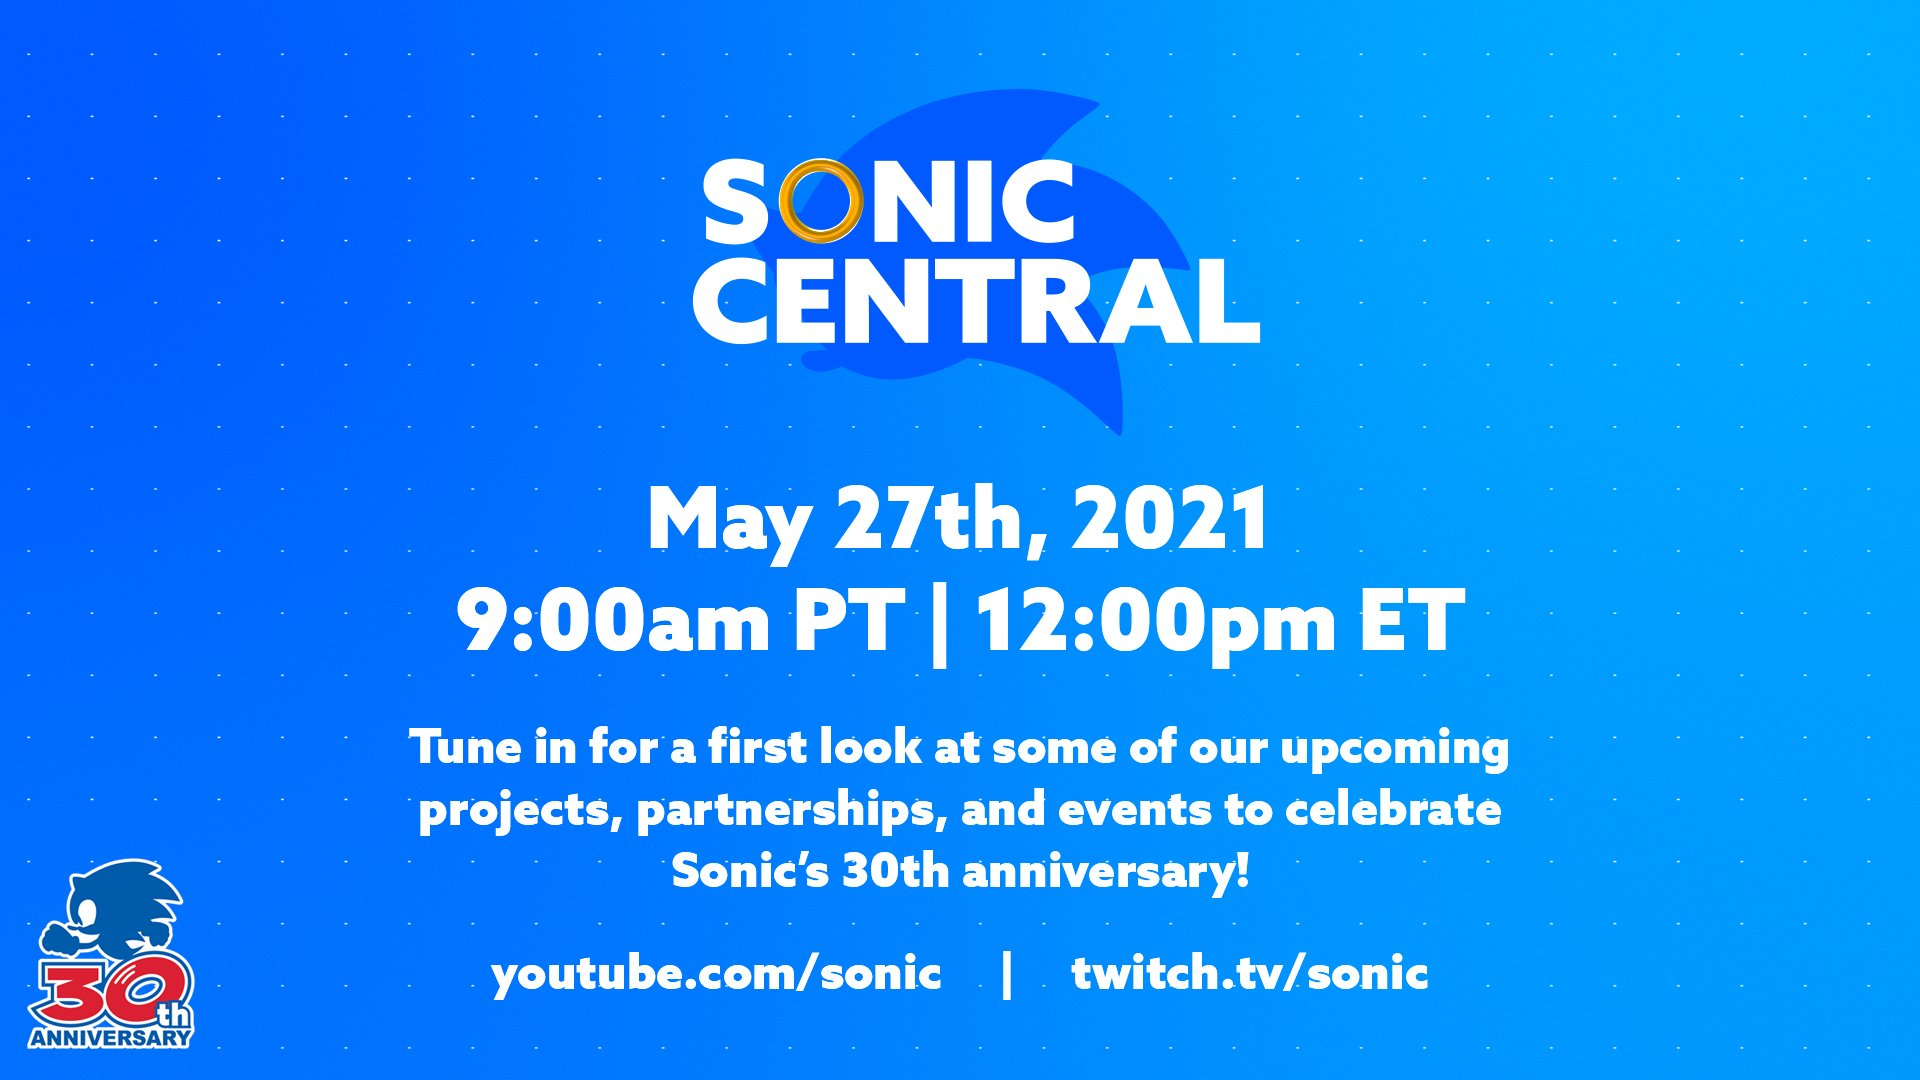 Sonic Central image, May 27th, 2021. 9:00am PT | 12:00PM ET. Tune in for a first look at some of our upcoming projects, partnerships, and events to celebrate Sonic's 30th anniversary!